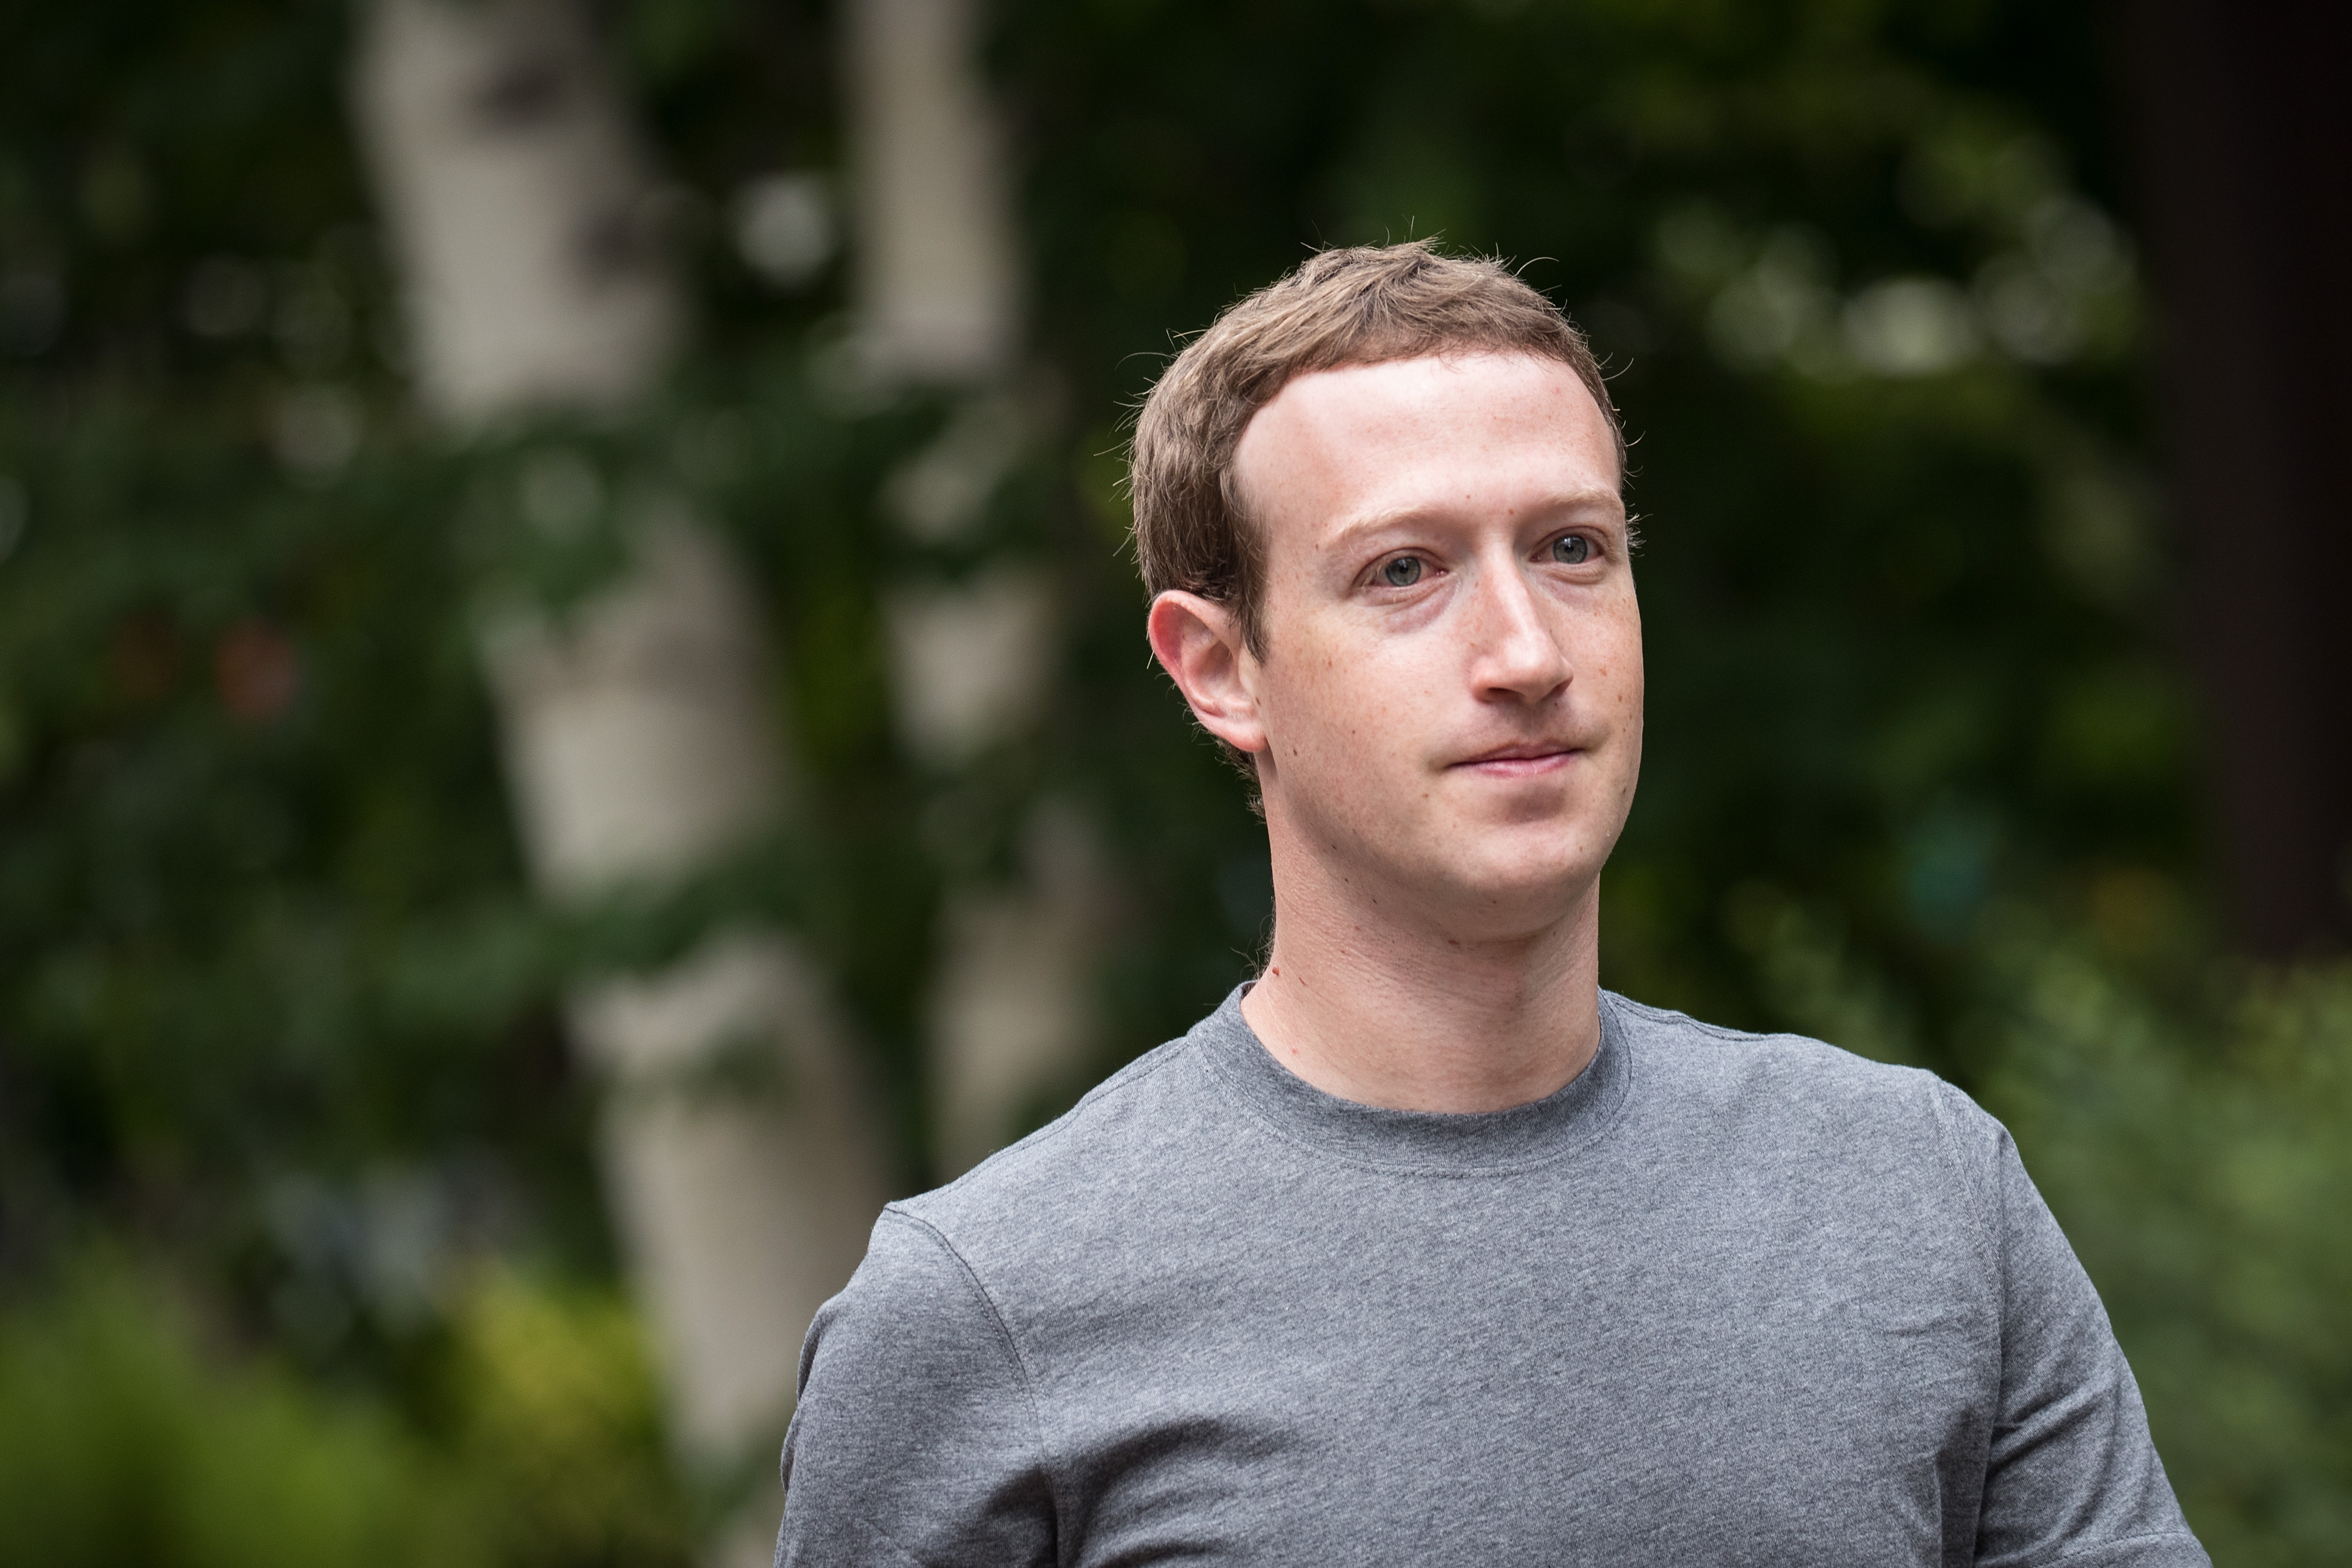 Mark Zuckerberg, chief executive officer and founder of Facebook on July 14, 2017 in Sun Valley, Idaho.